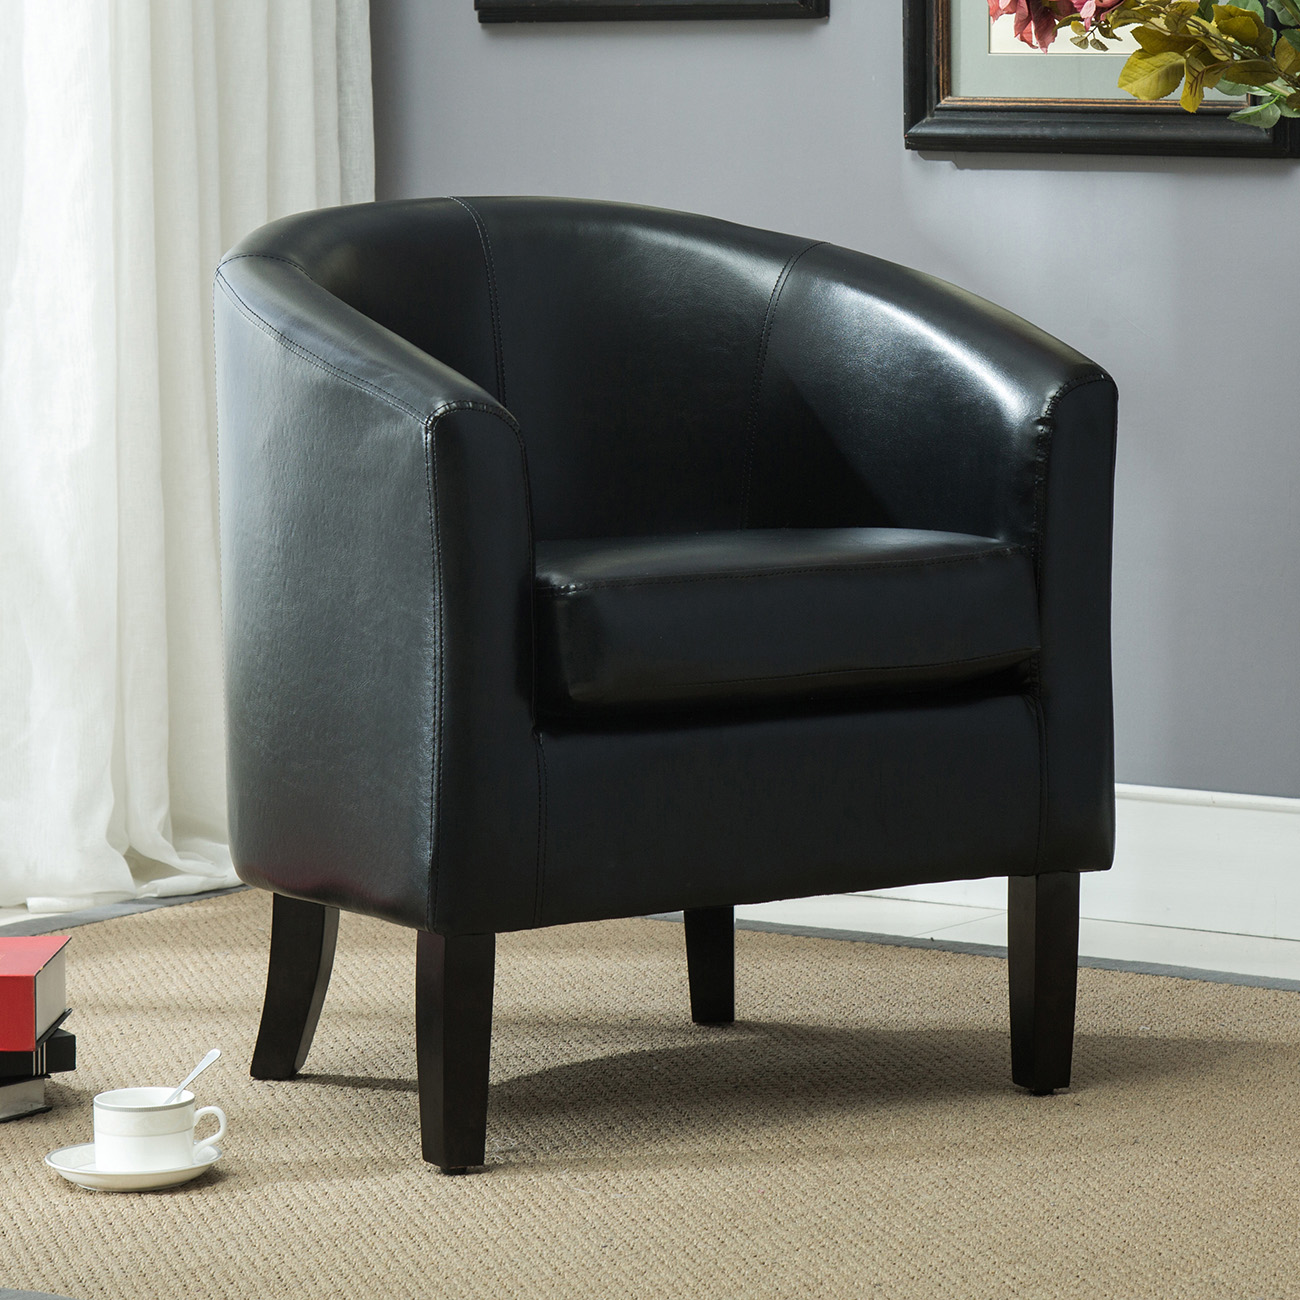 Black Barrel Chair Elegant Tub Barrel Design Faux Leather Club Chair Style